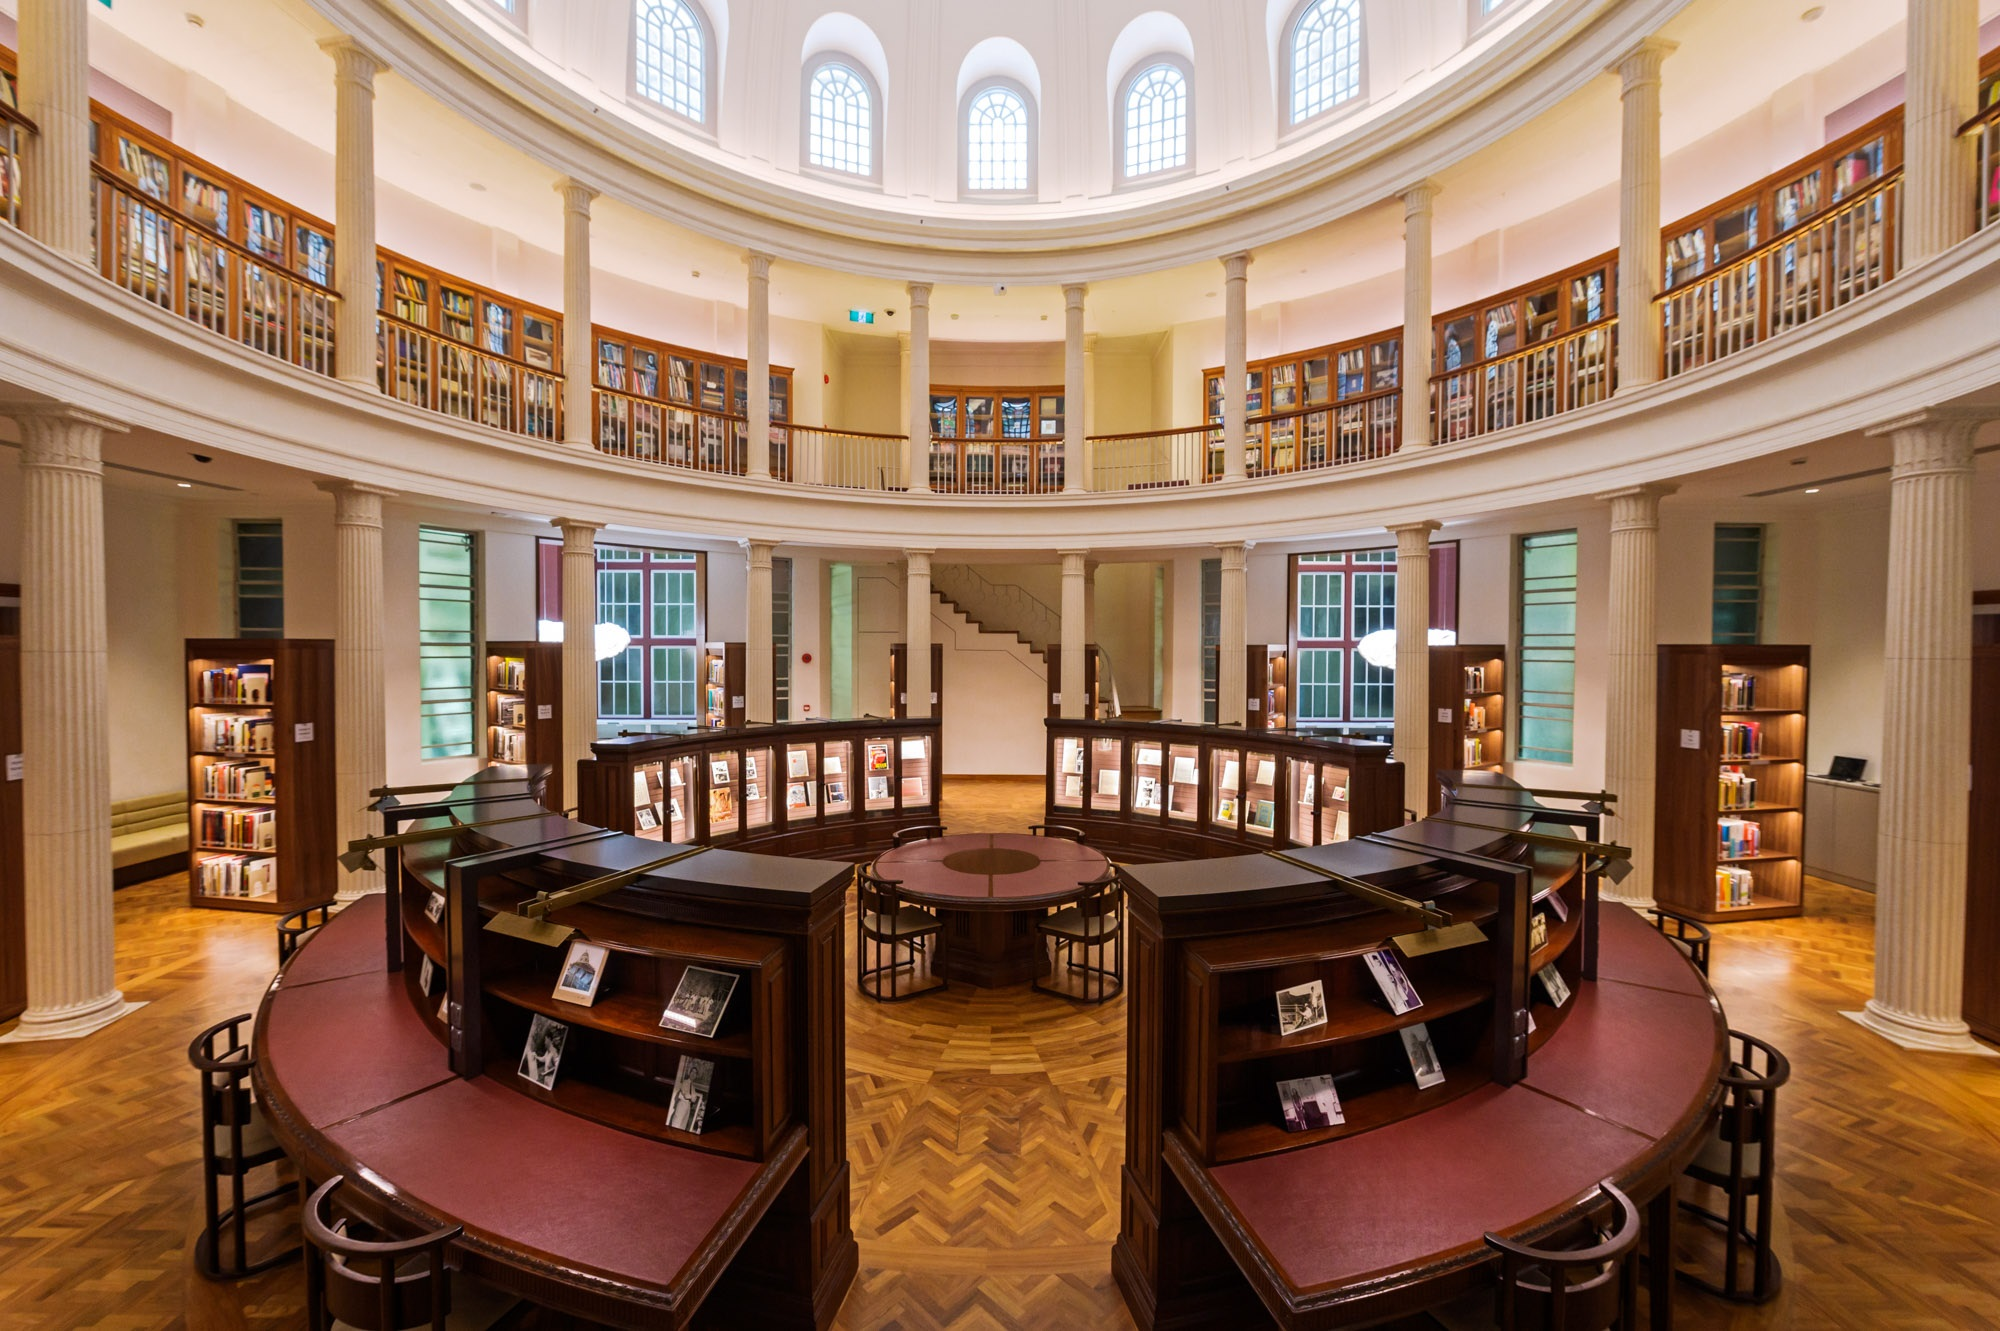 101 things to do in Singapore Rotunda Library & Archive